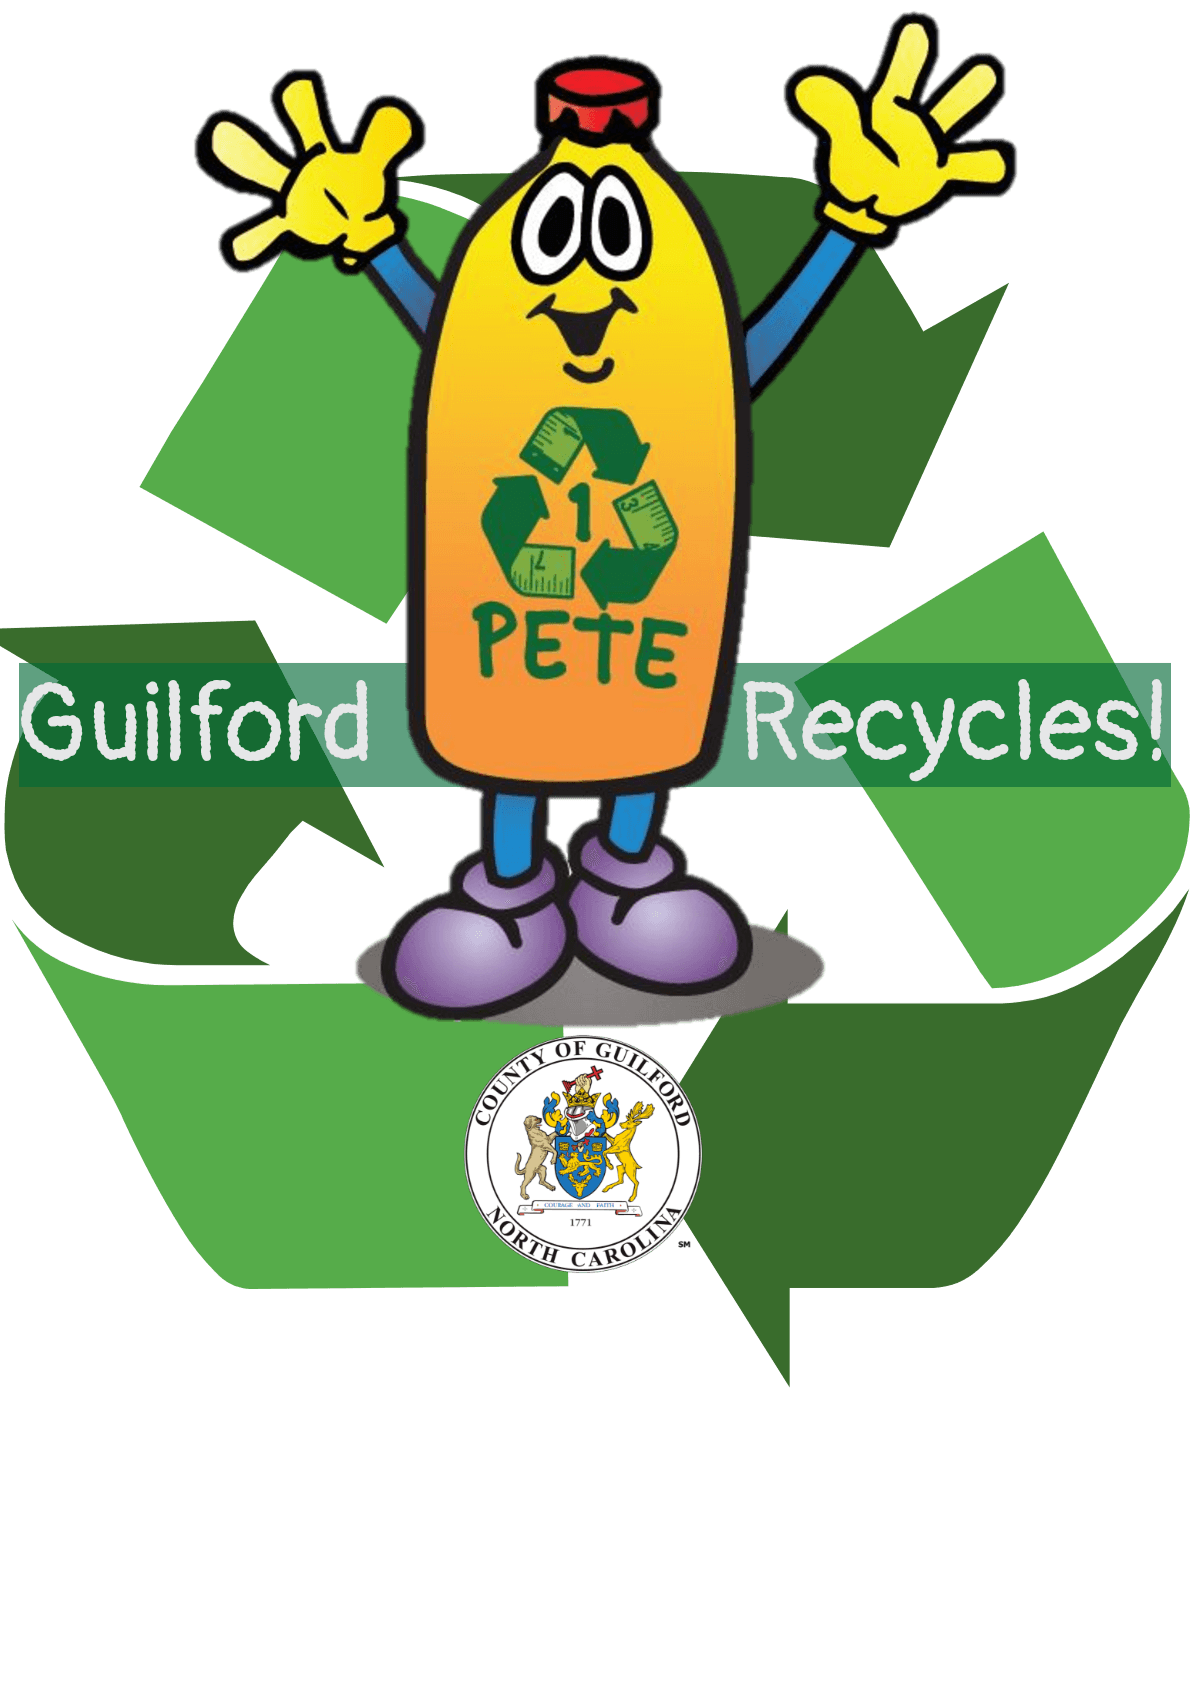 Guilford Recycles